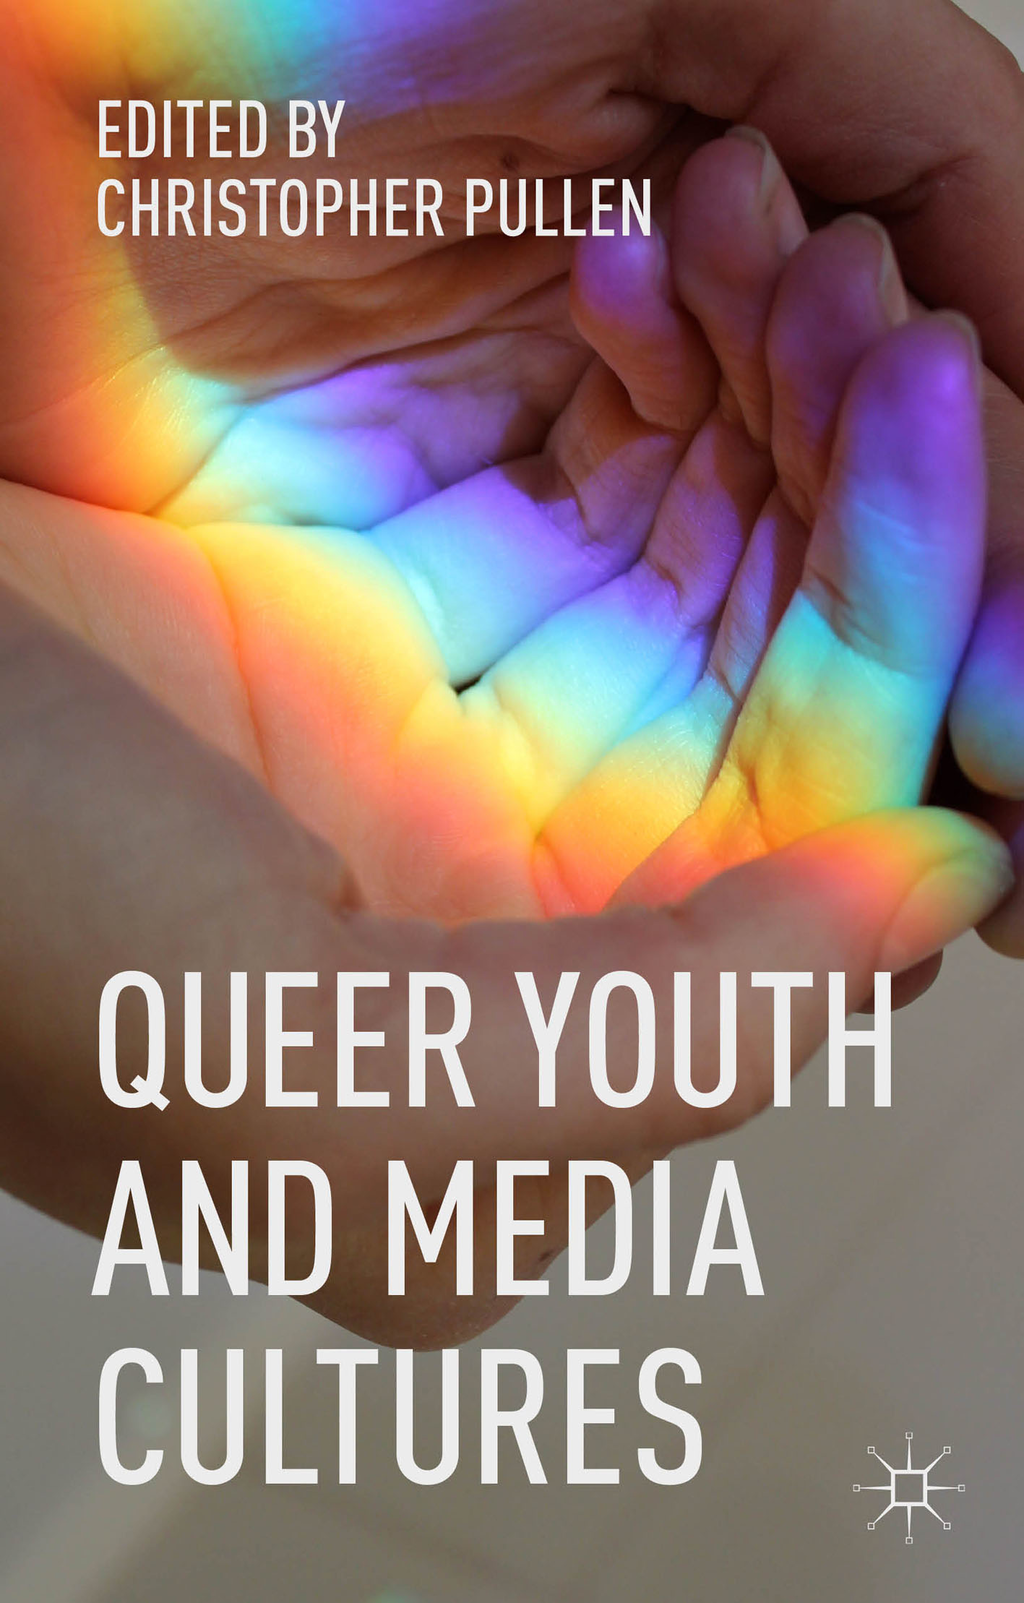 Queer Youth and Media Cultures